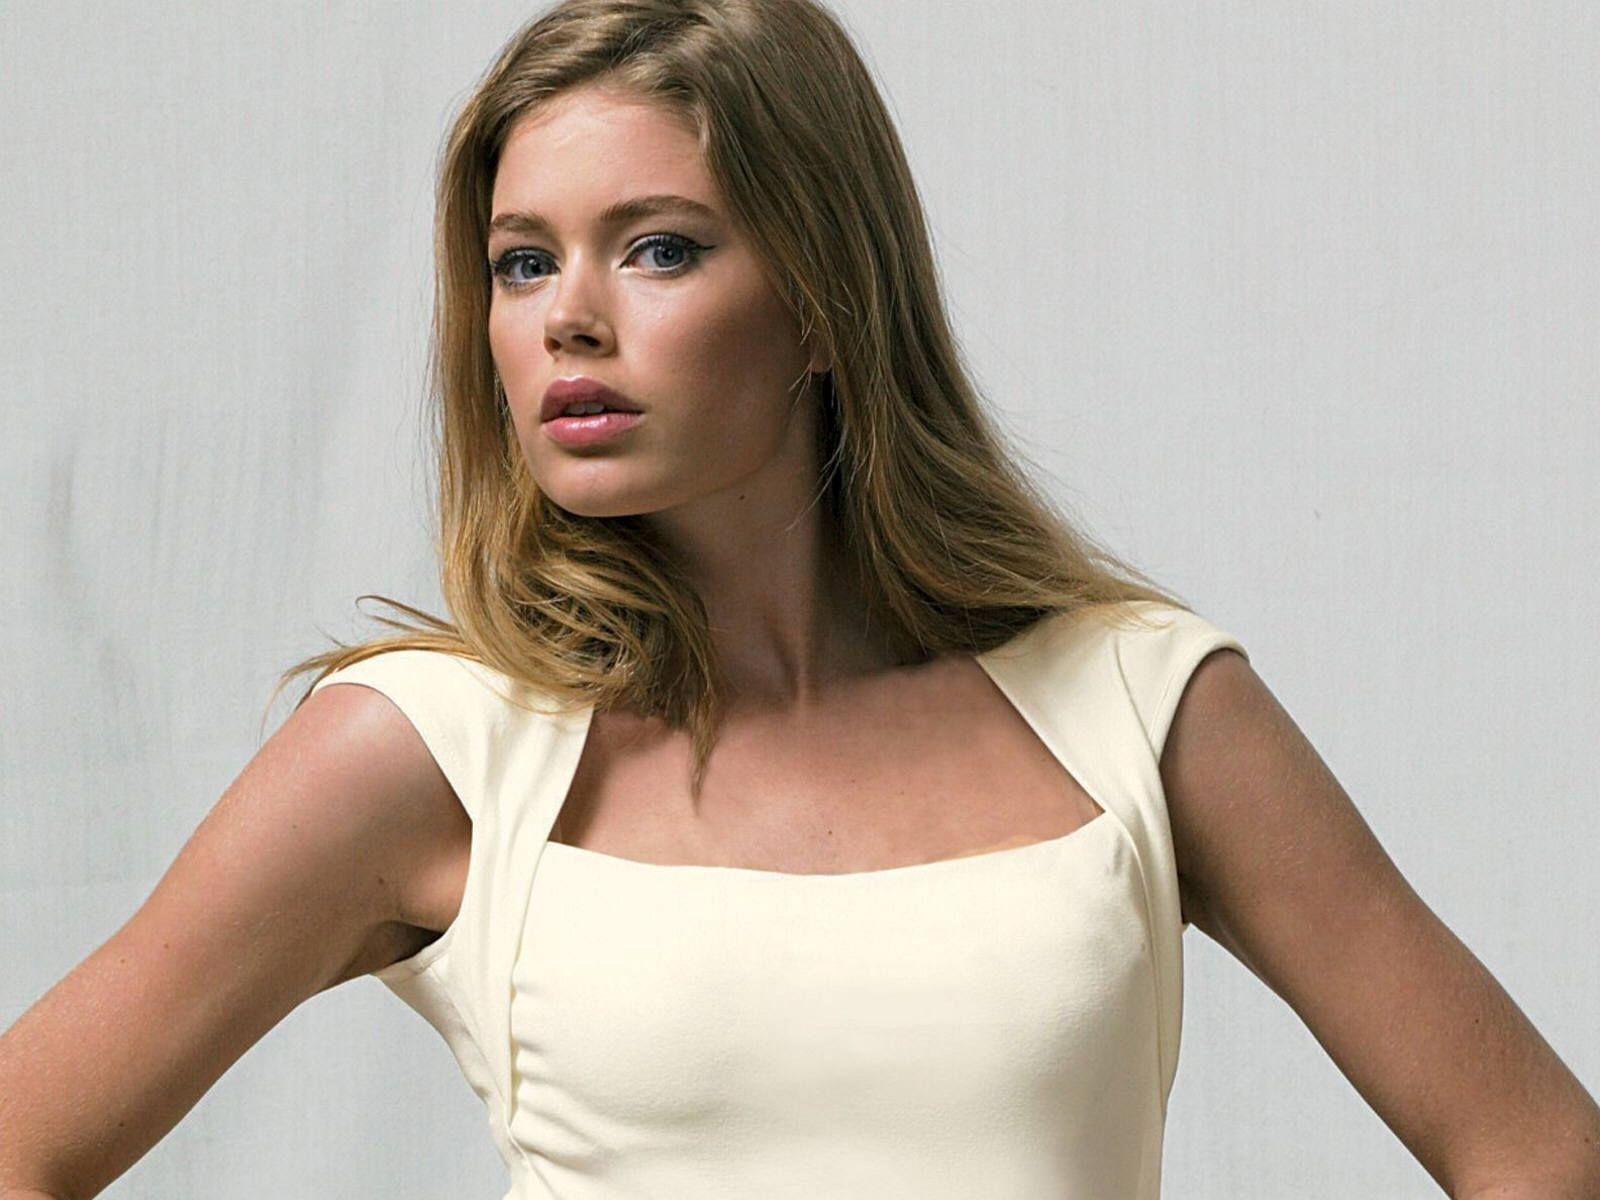 Doutzen - Doutzen Kroes Wallpaper (5545106) - Fanpop